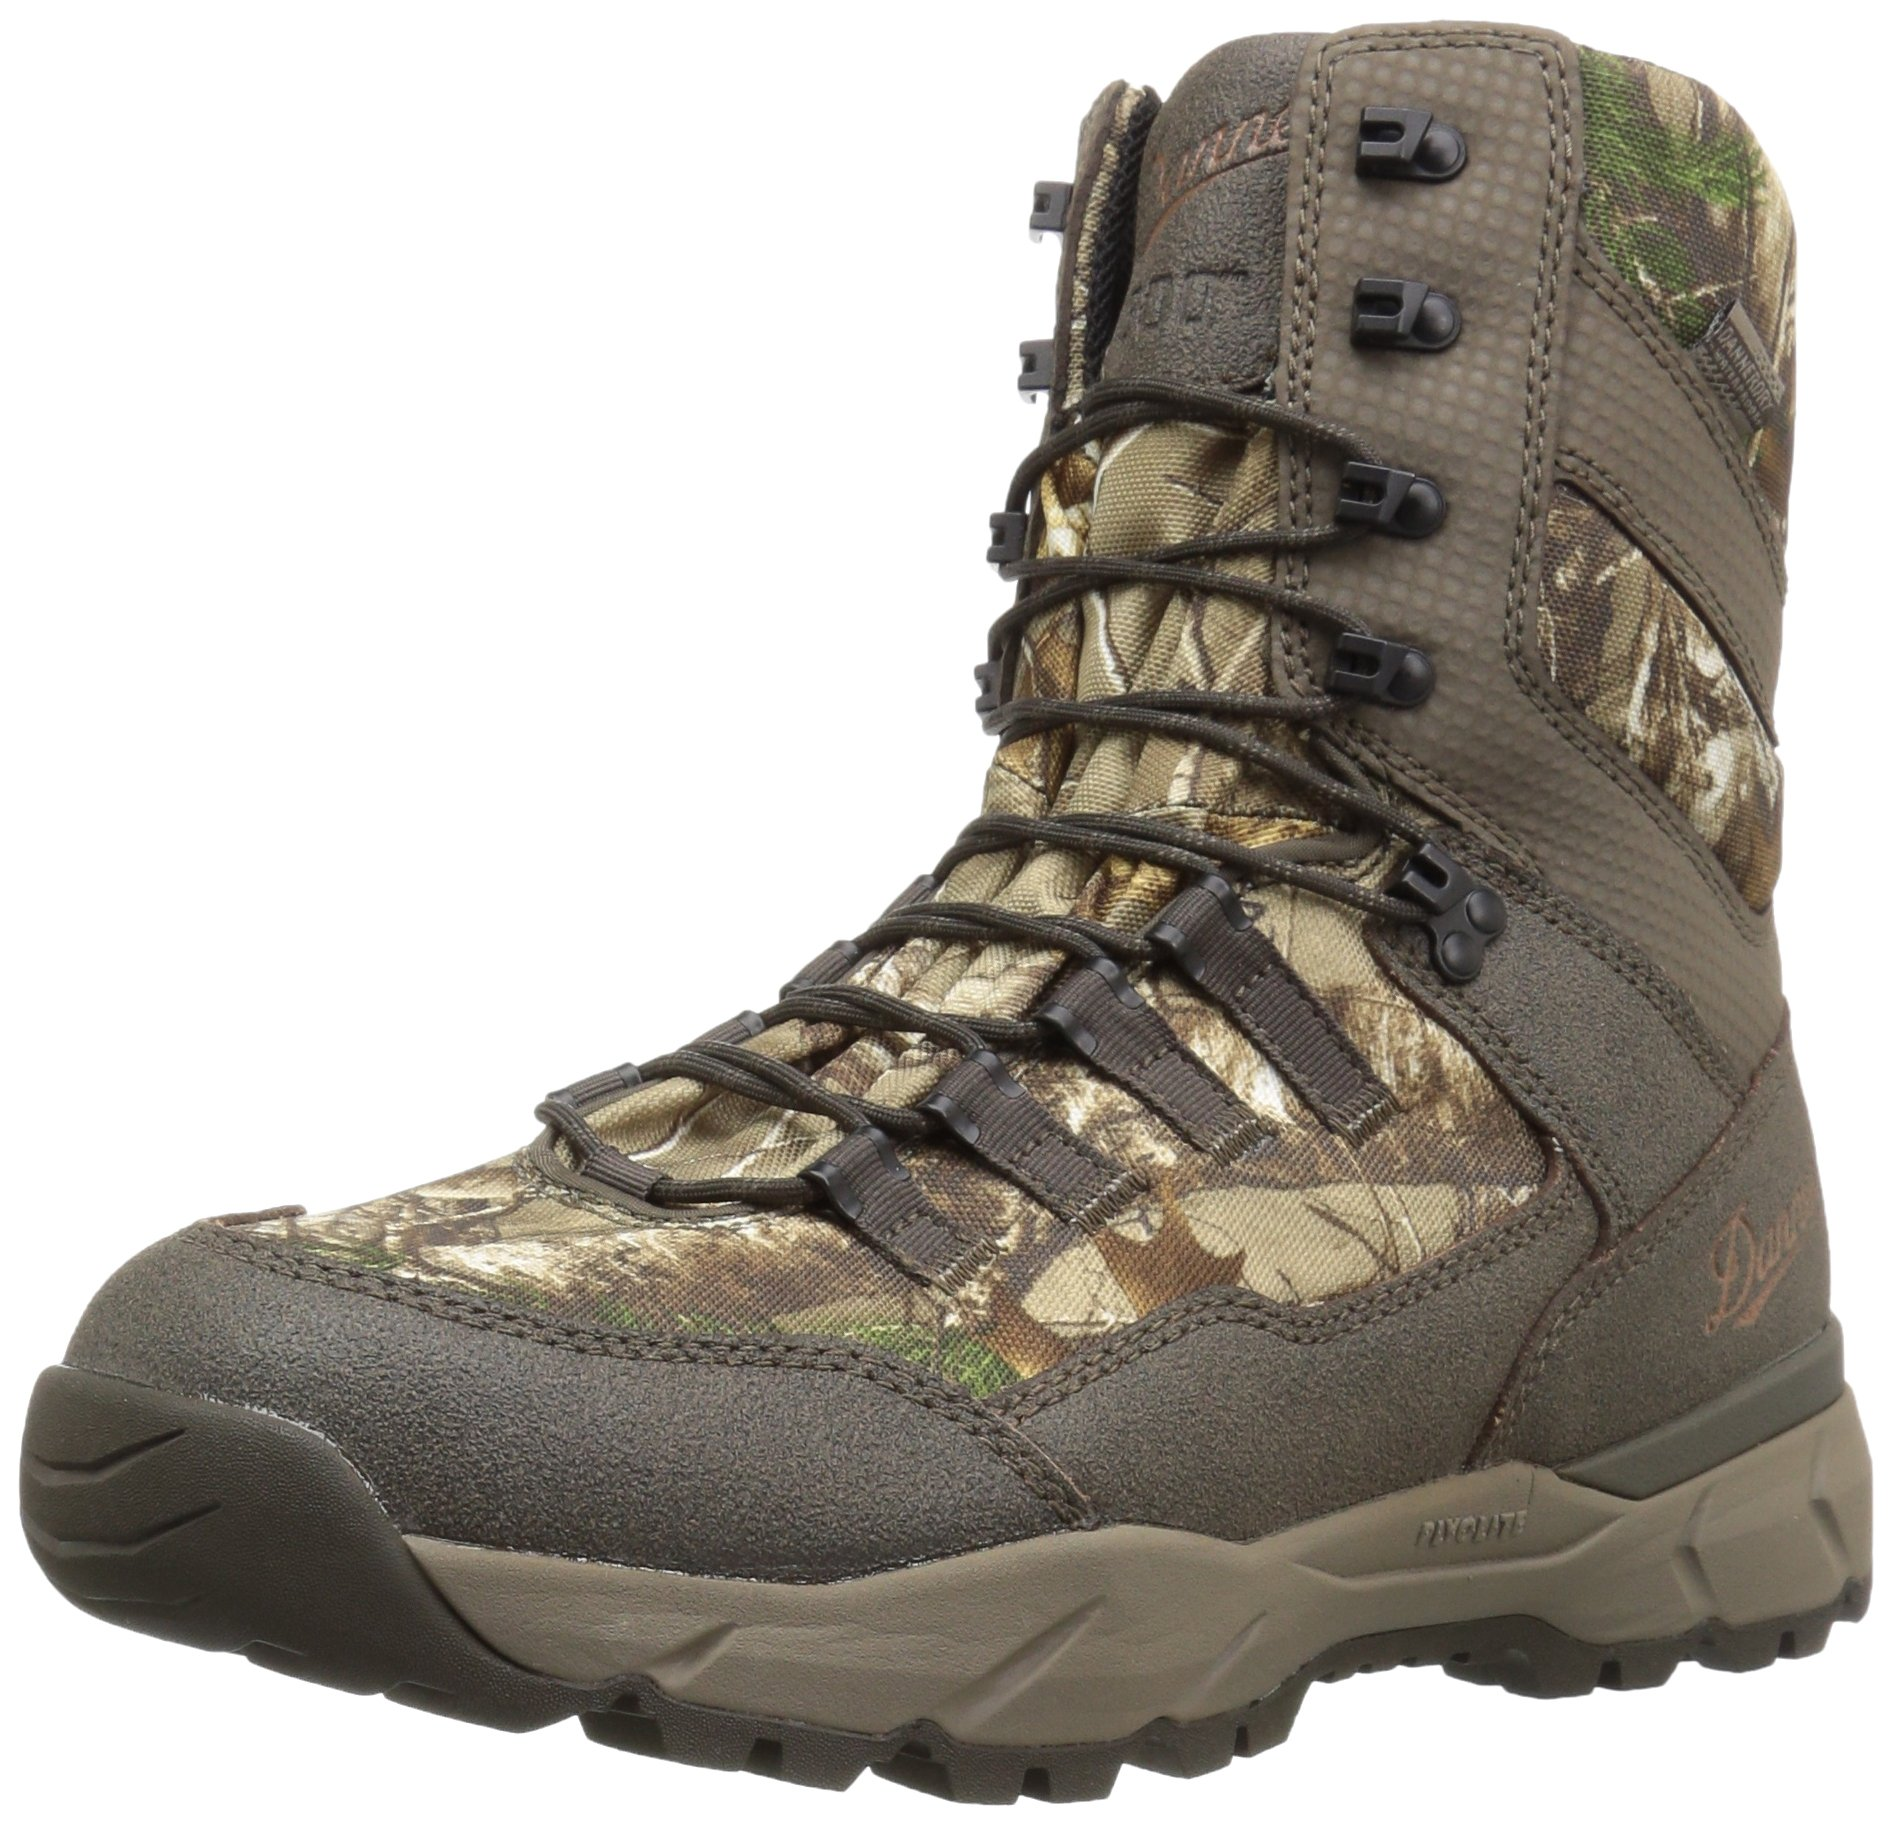 Danner Men's Vital Insulated 800G Hunting Shoes, Realtree Extra, 12 2E US by Danner